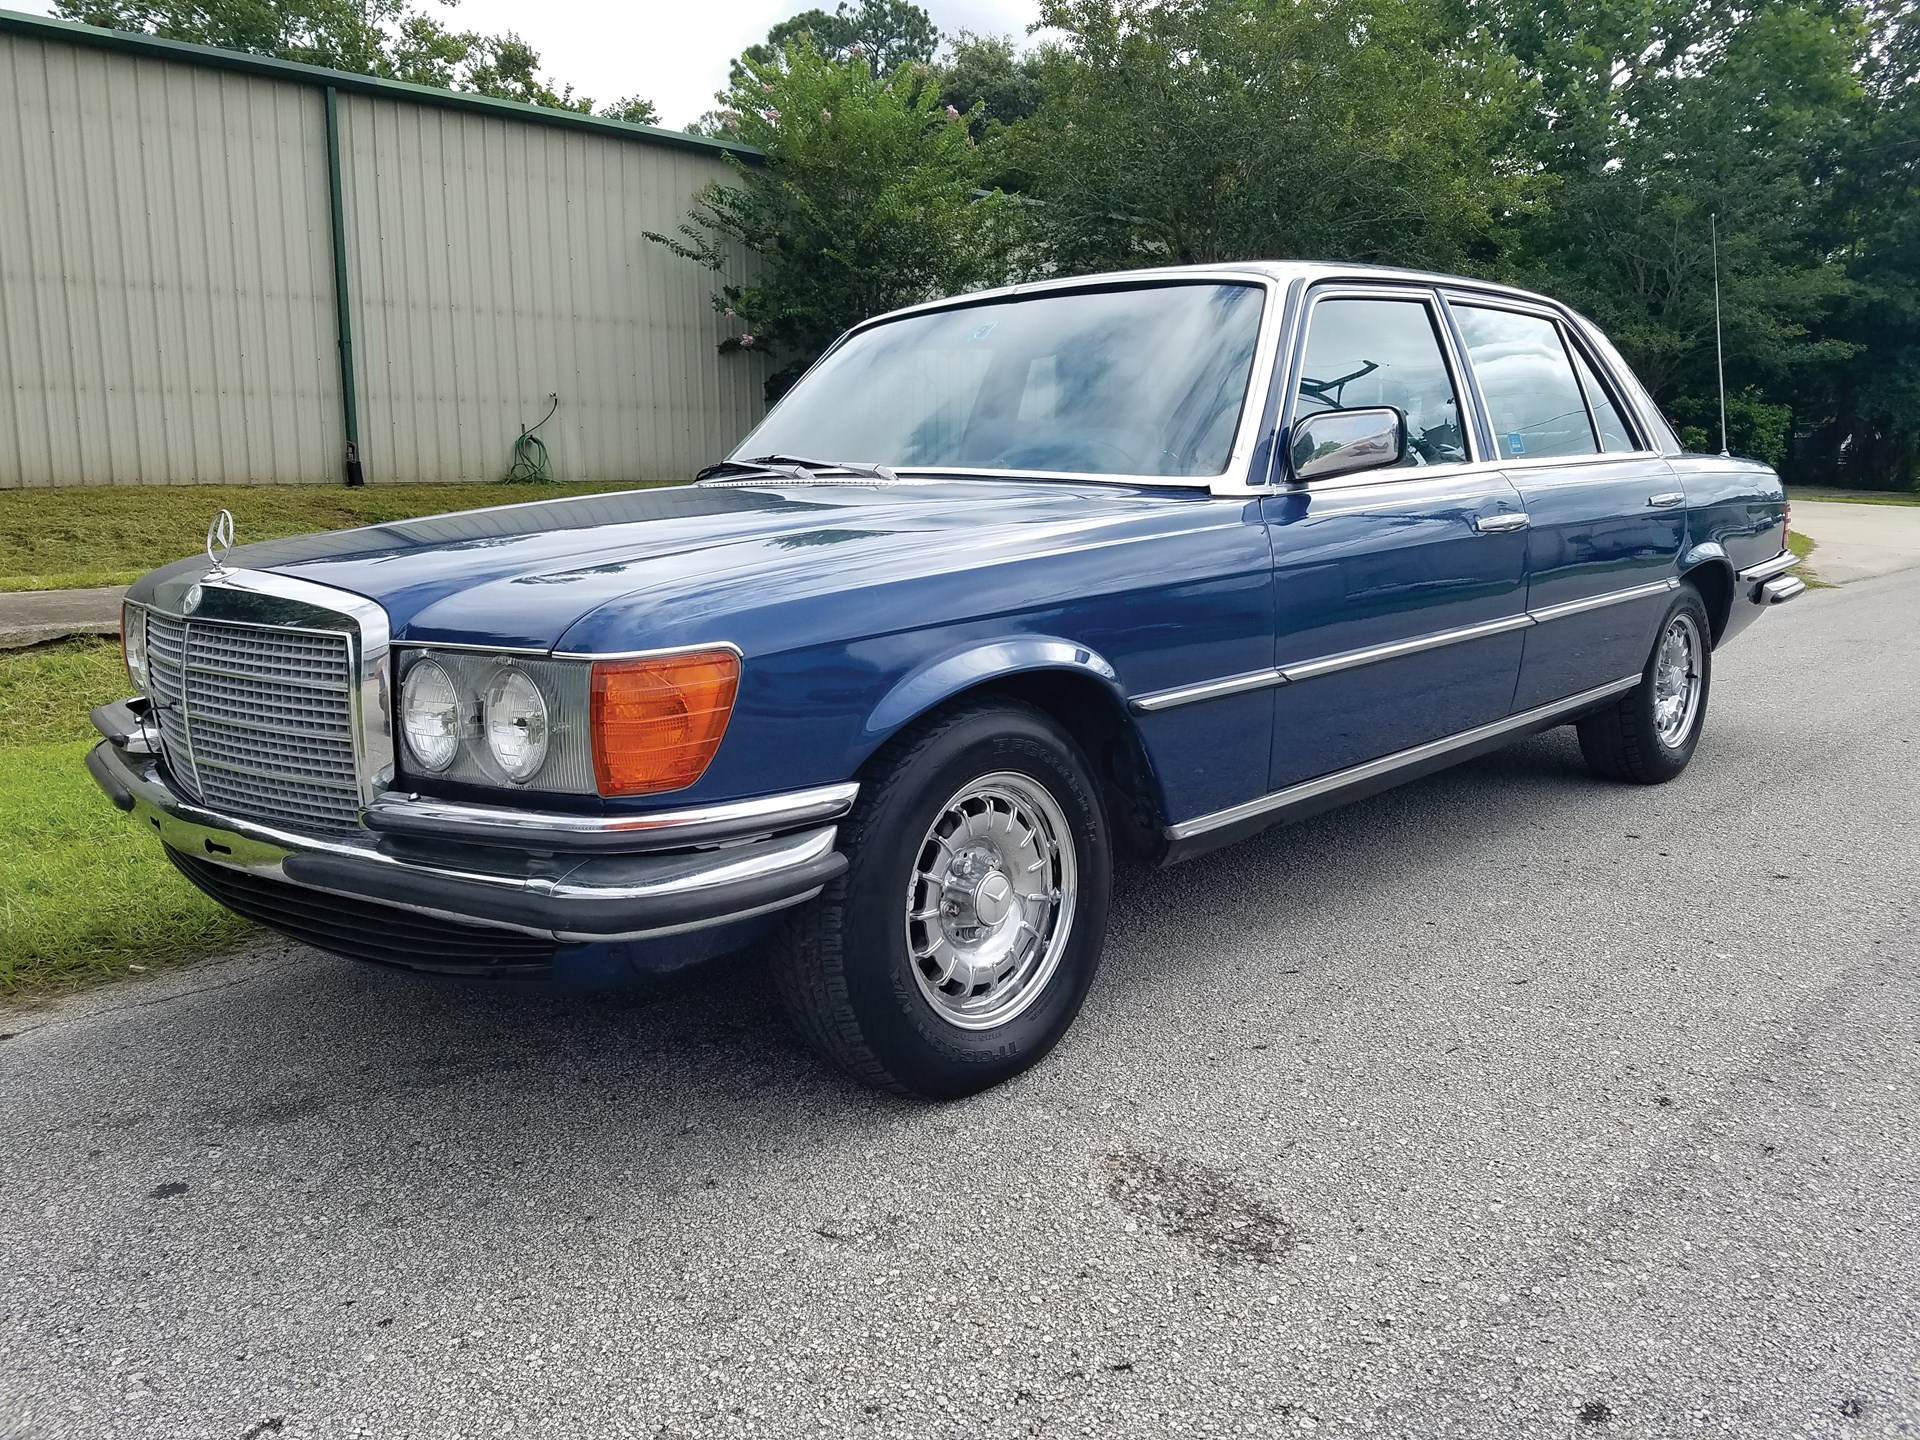 rm sotheby 39 s 1980 mercedes benz 450 sel 6 9 auburn. Black Bedroom Furniture Sets. Home Design Ideas